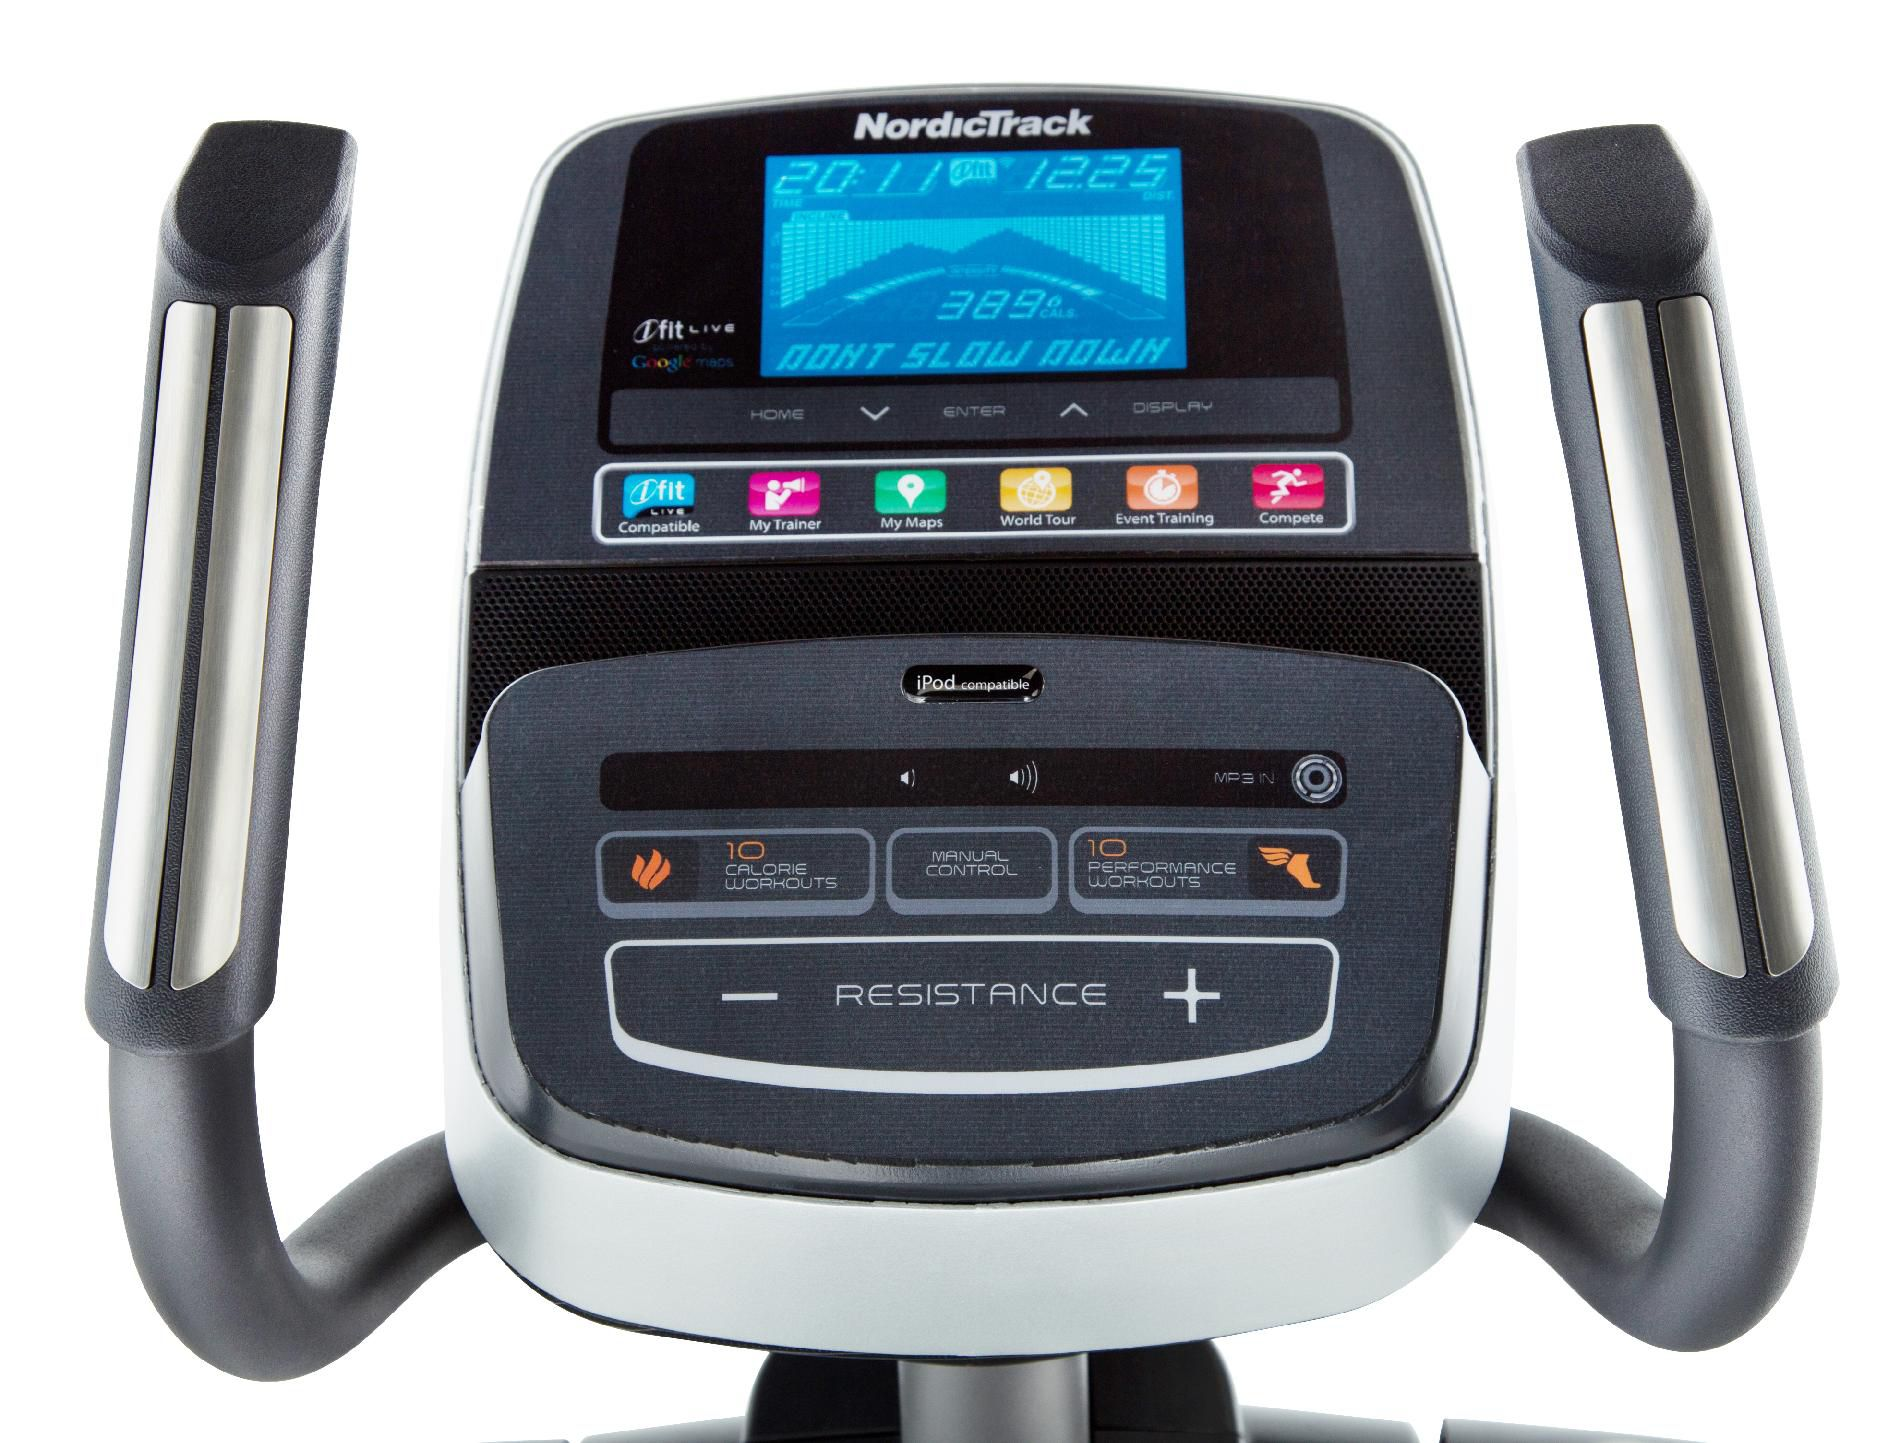 NordicTrack E5.7 Elliptical